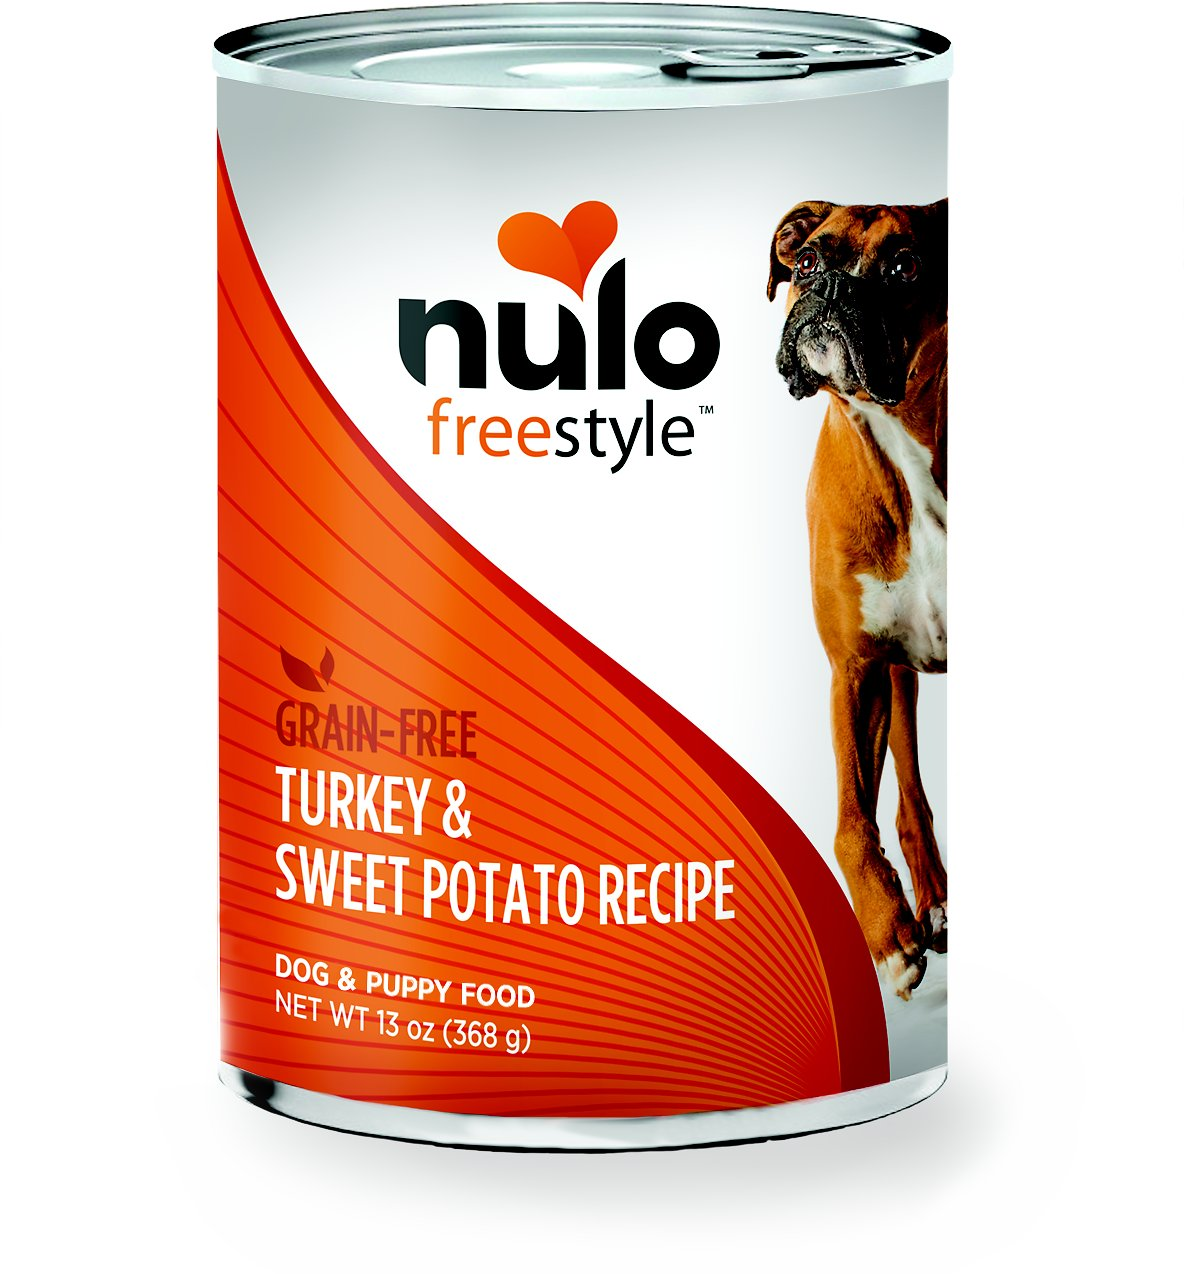 Nulo Dog Freestyle Pate Turkey & Sweet Potato Recipe Grain-Free Canned Dog Food Image